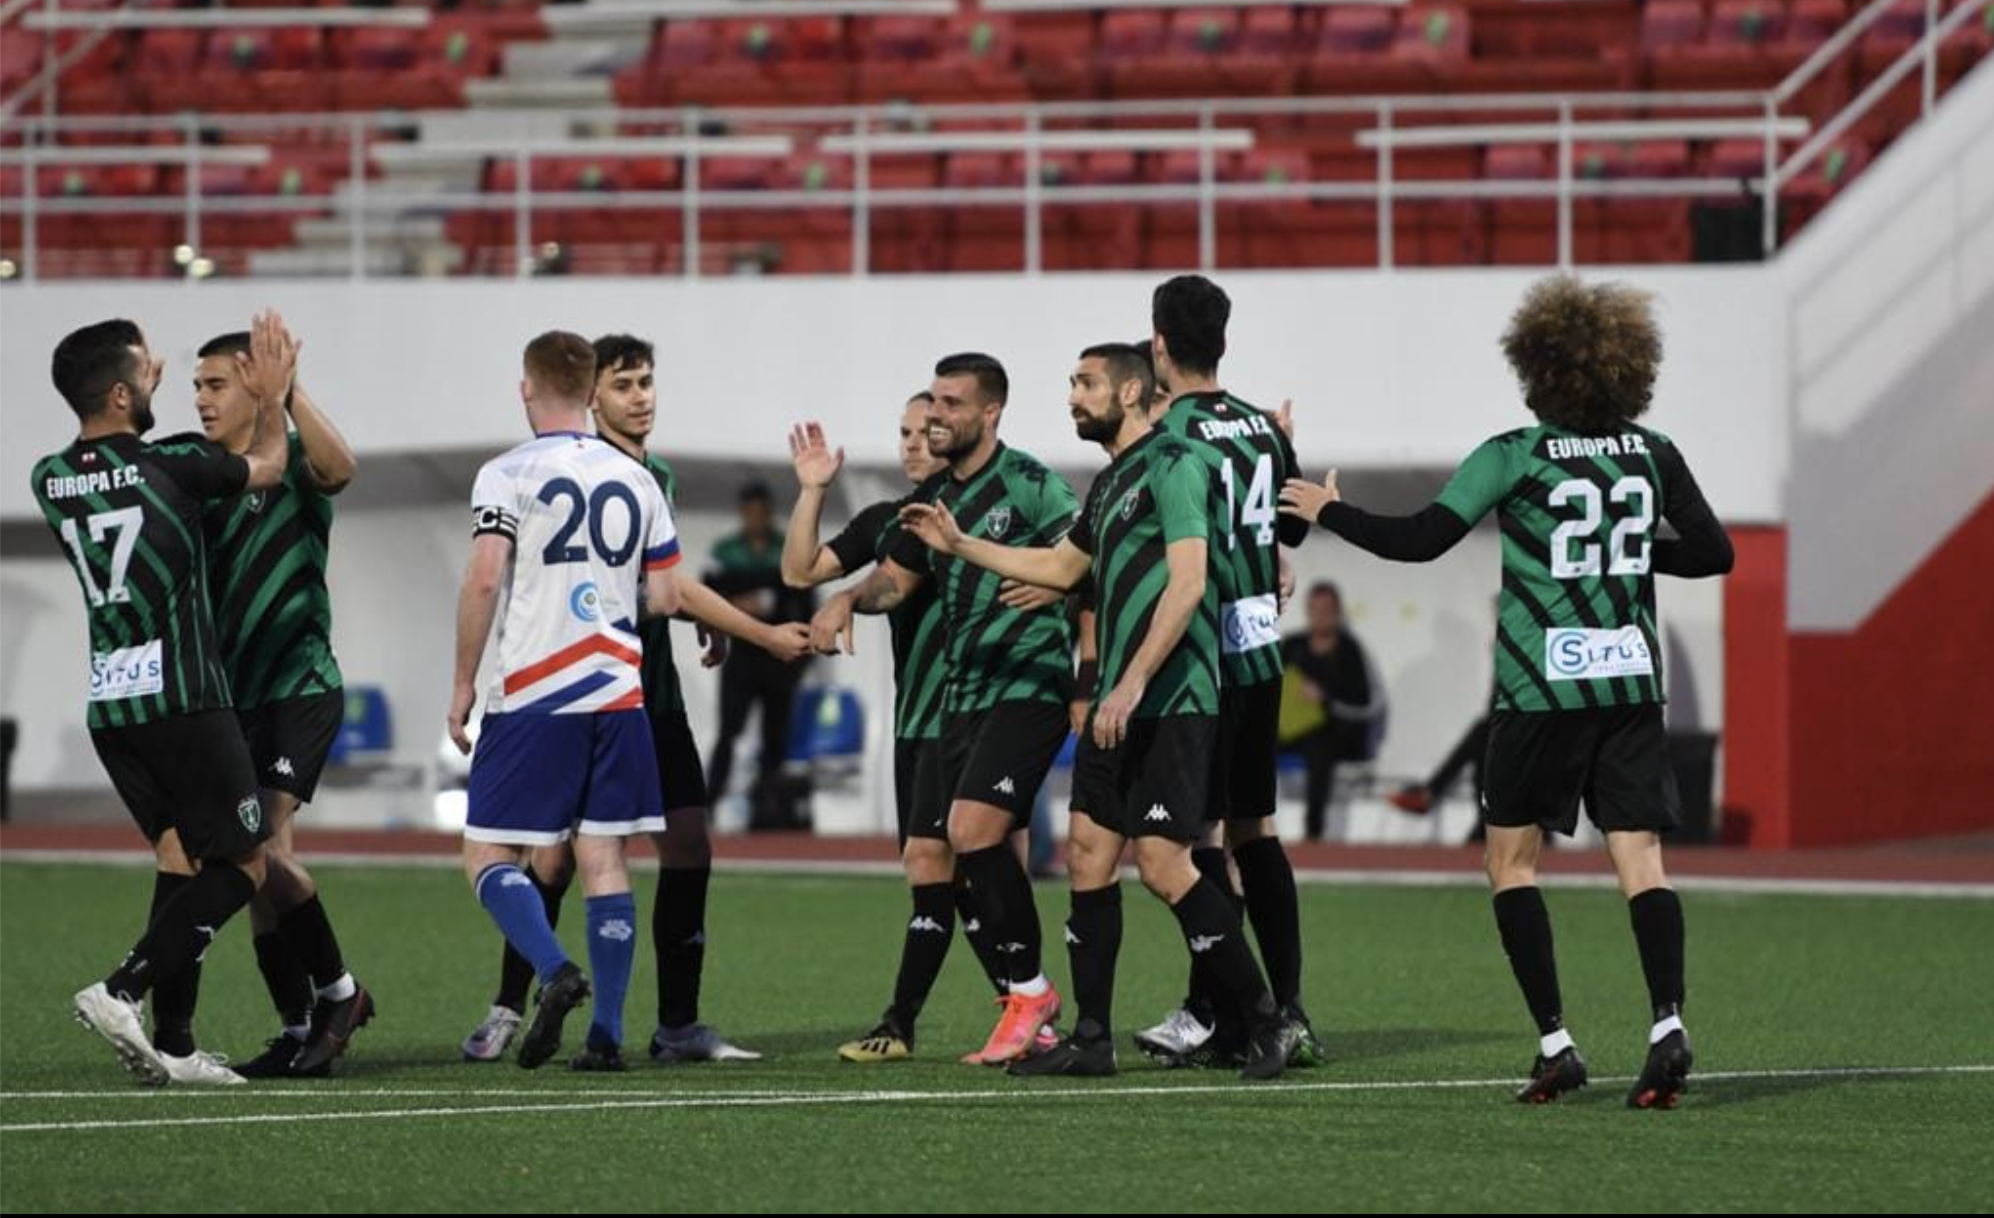 EuropaFC-v-EuropaPoint-Cup